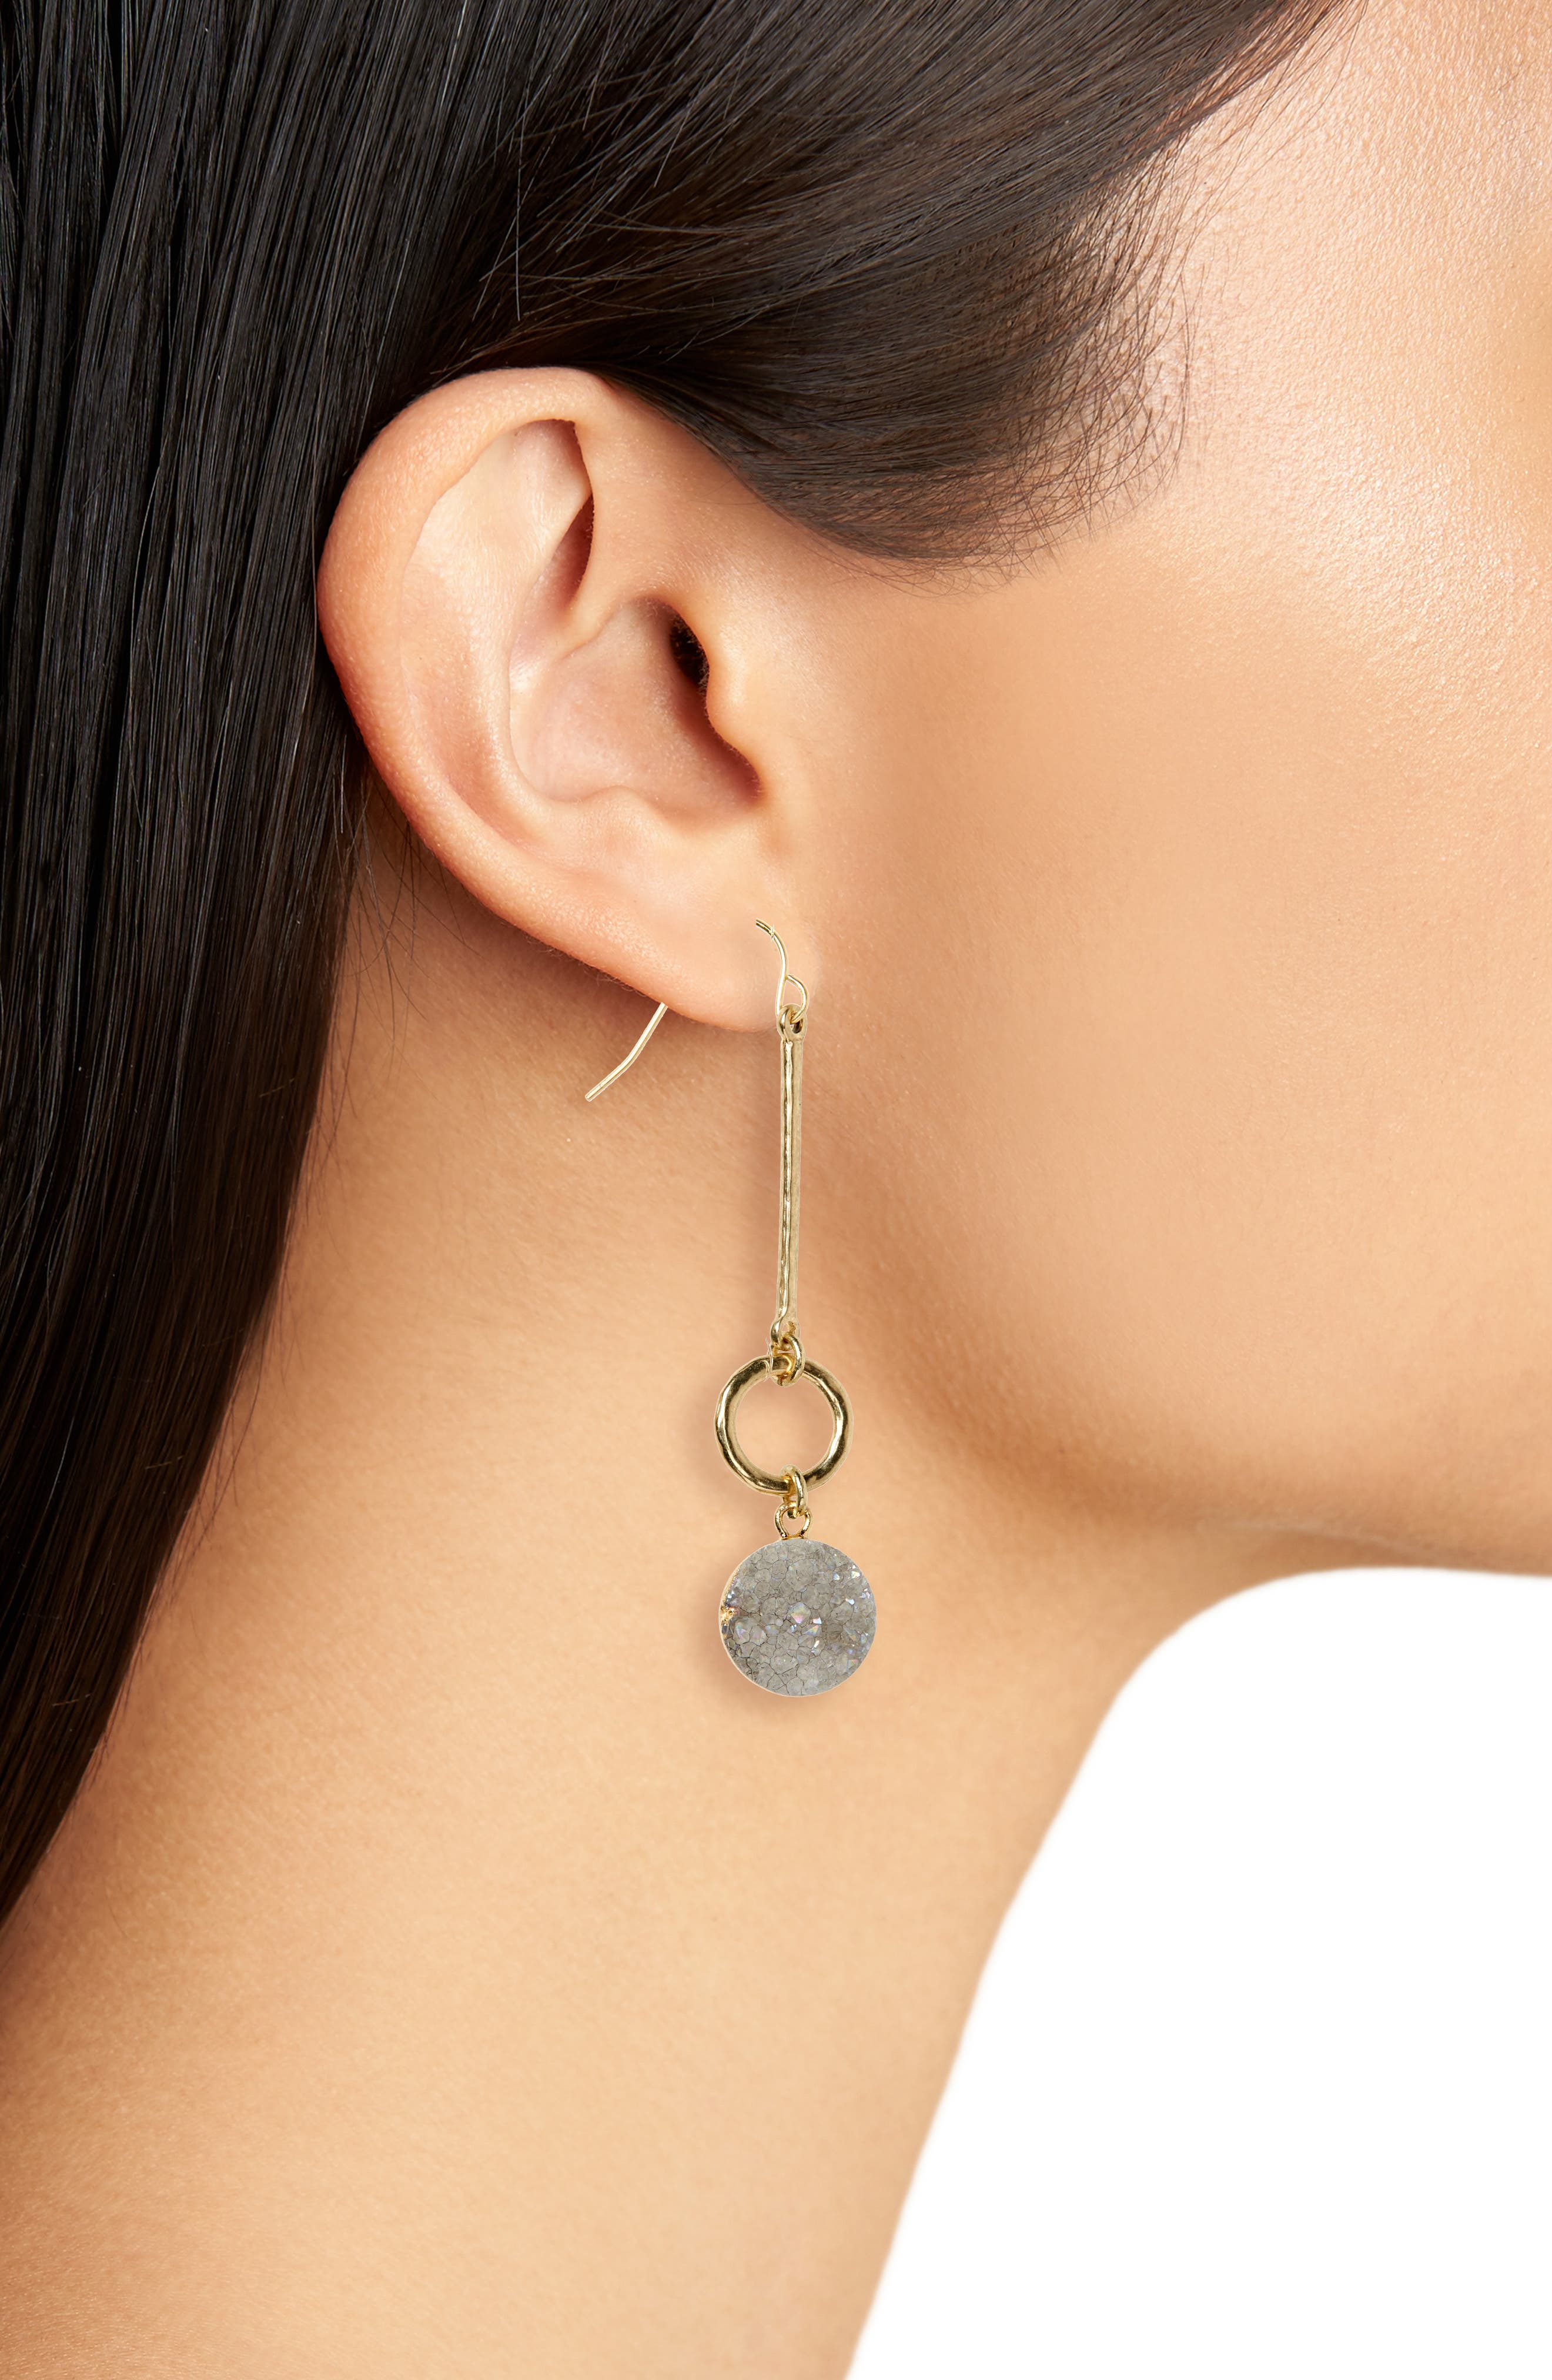 Semiprecious Mismatched Linear Drop Earrings,                             Alternate thumbnail 2, color,                             White- Gold